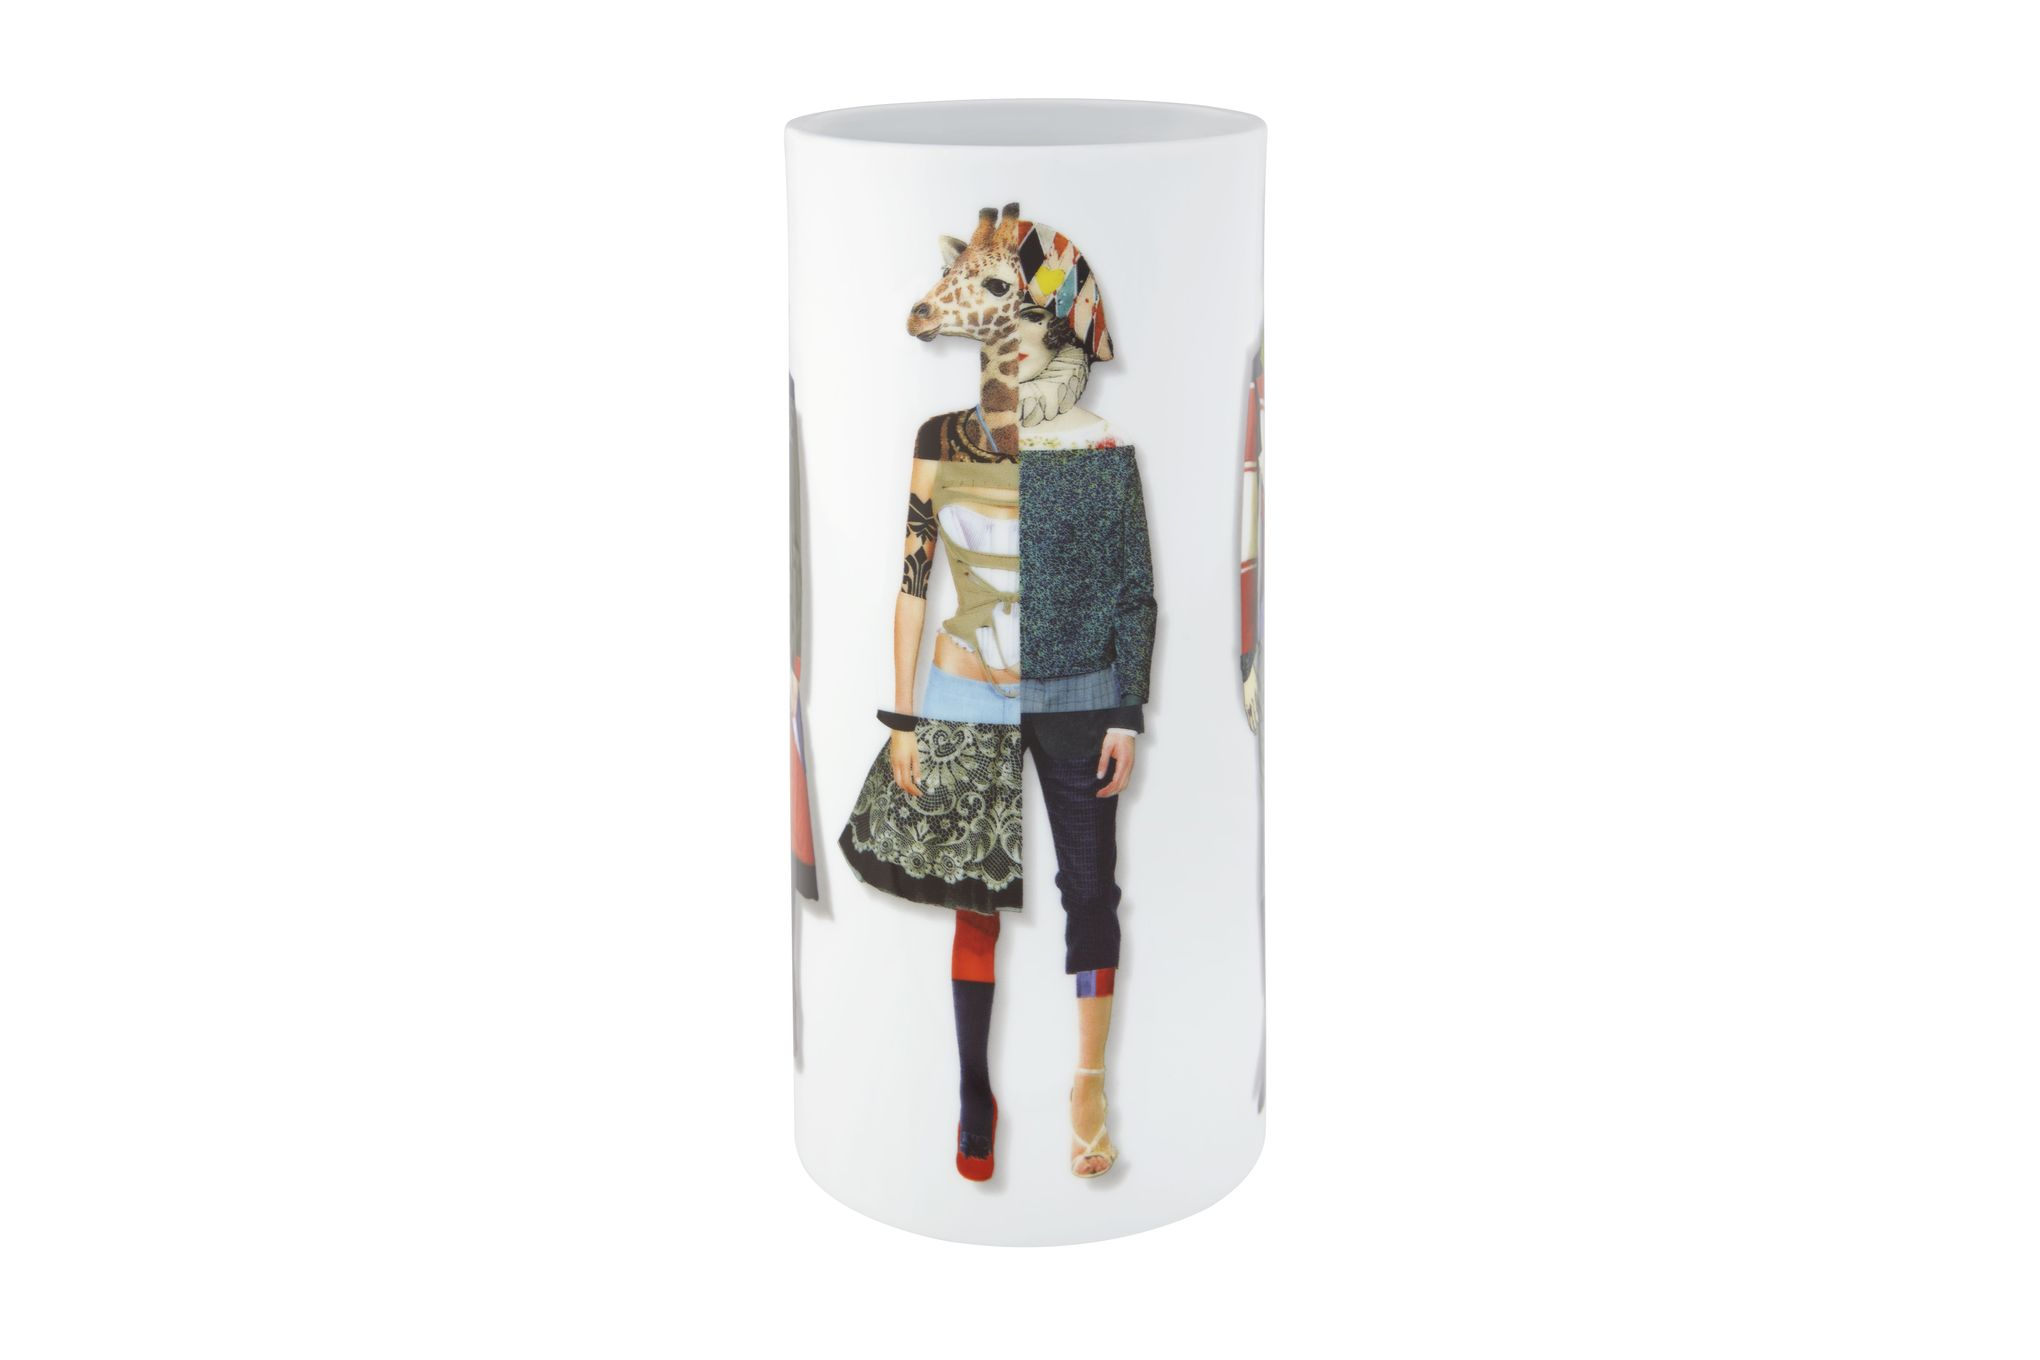 Christian Lacroix Love Who You Want Vase Gift Boxed 27.8cm thumb 2